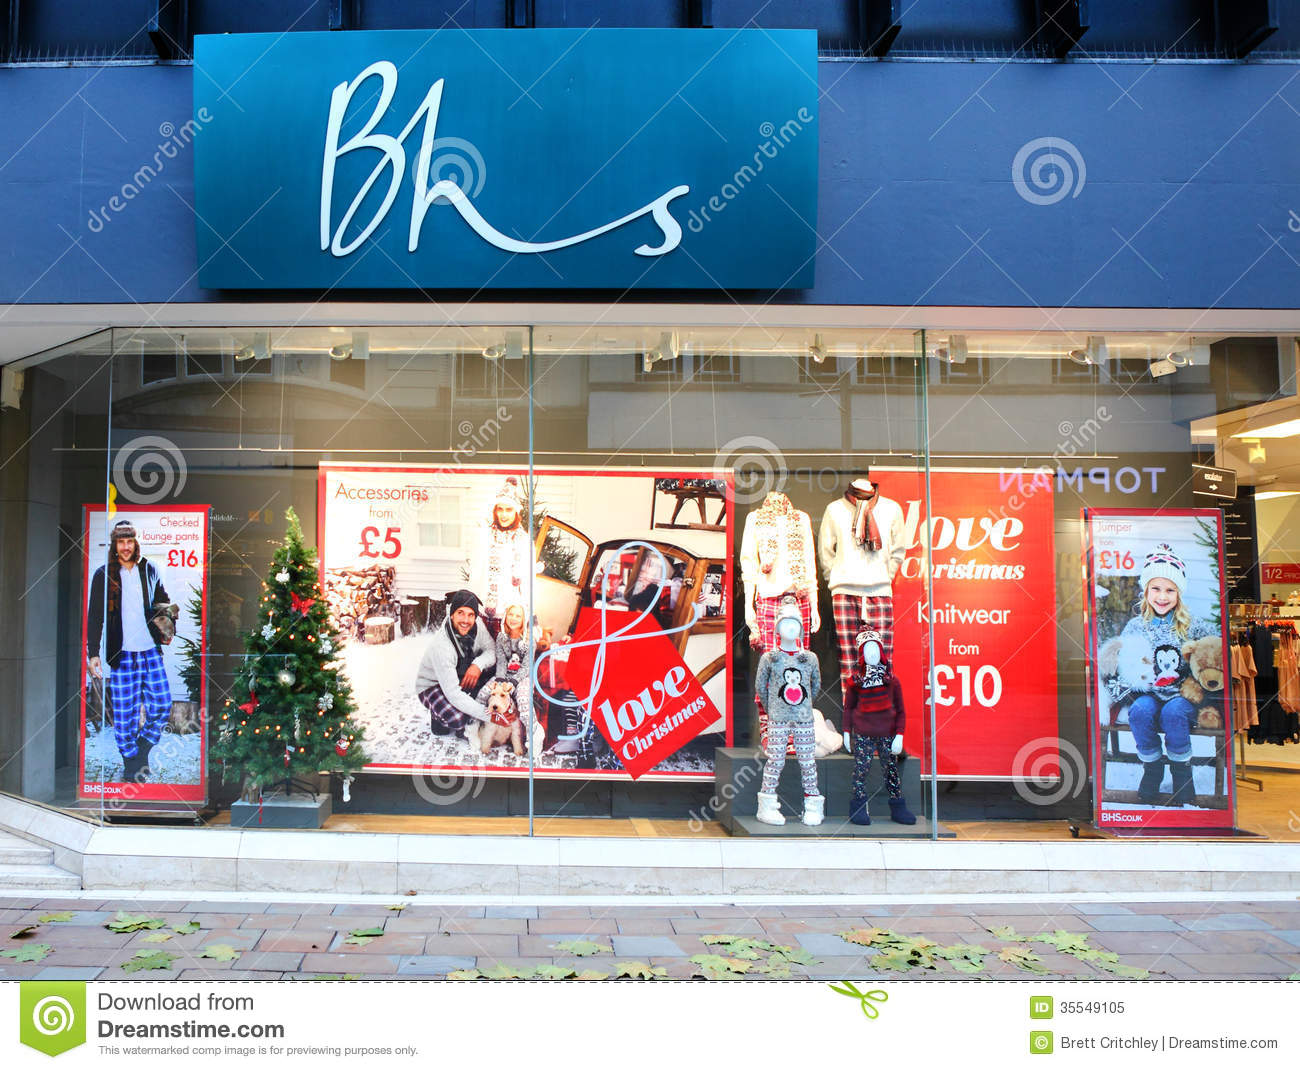 Bhs Christmas Gifts Coupons & Promo codes Coupons Plus Deals has a source of coupons and deals provided by users and visitors daily. We target at building a must-visit website for consumers.